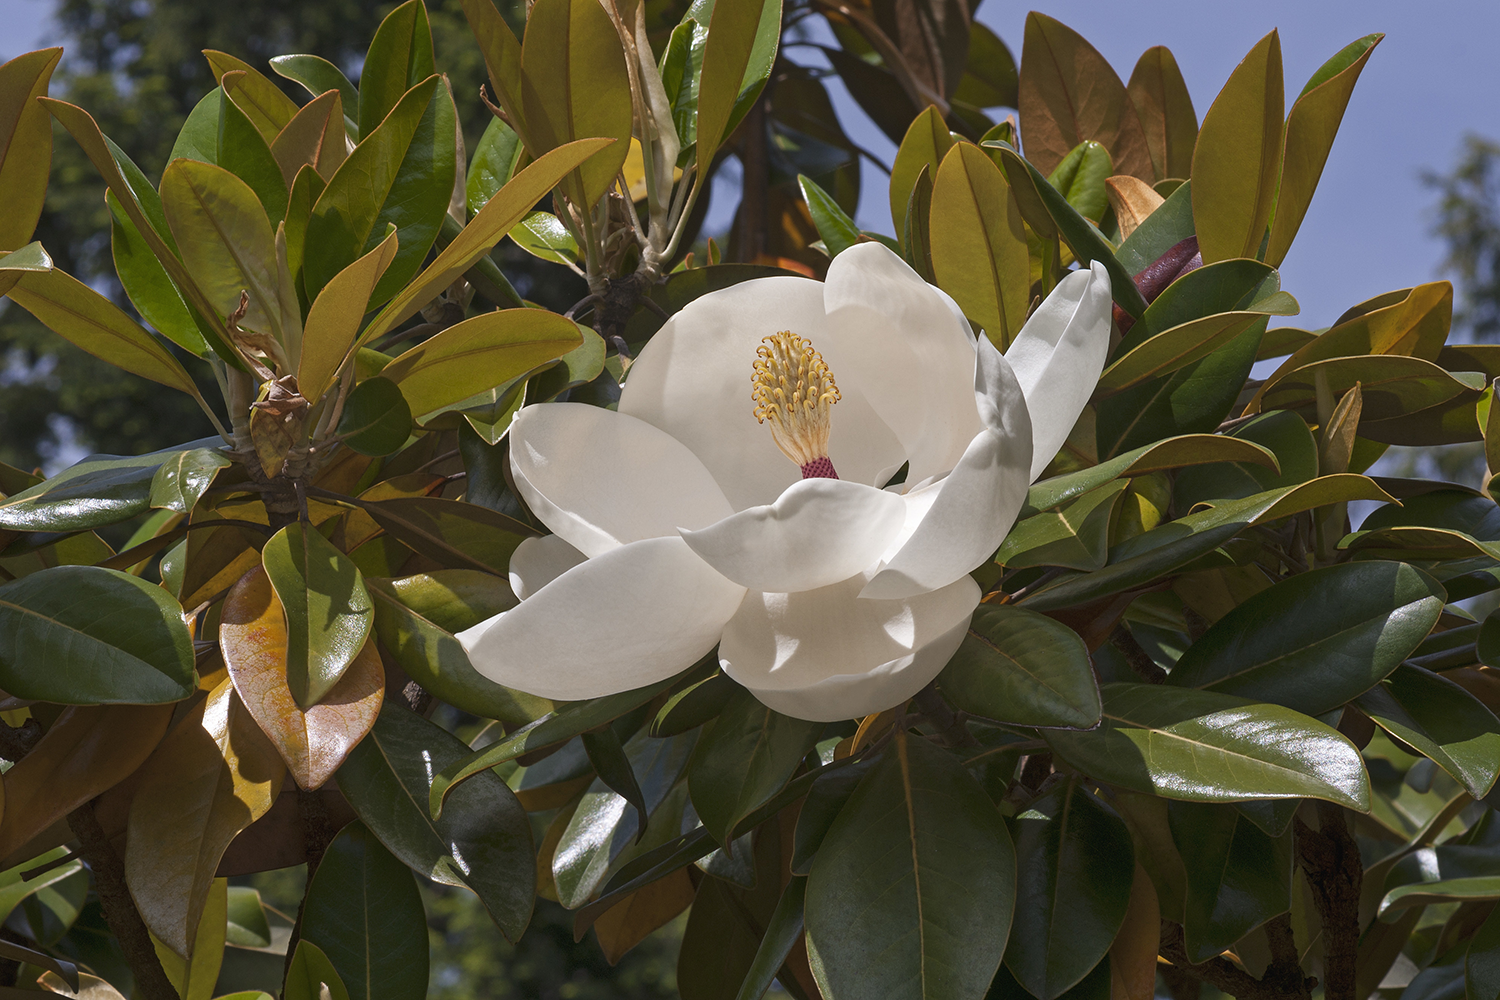 Landscaping Melbourne – Magnolia Exmouth in Flower